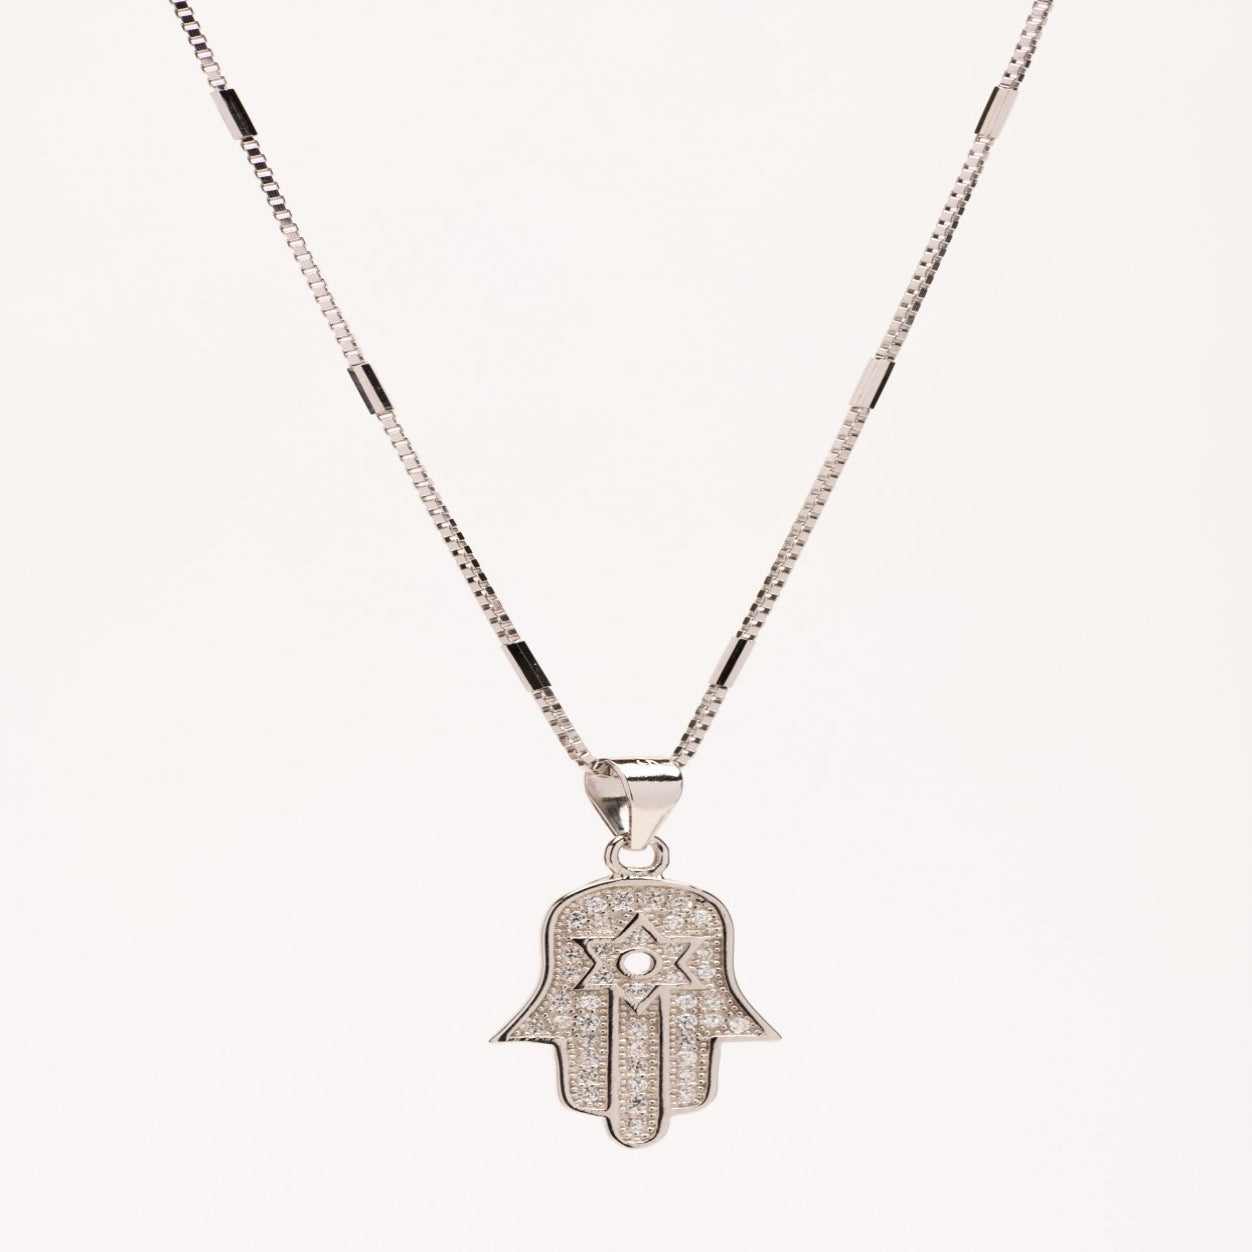 LEAH- Hamsa with Star of David necklace